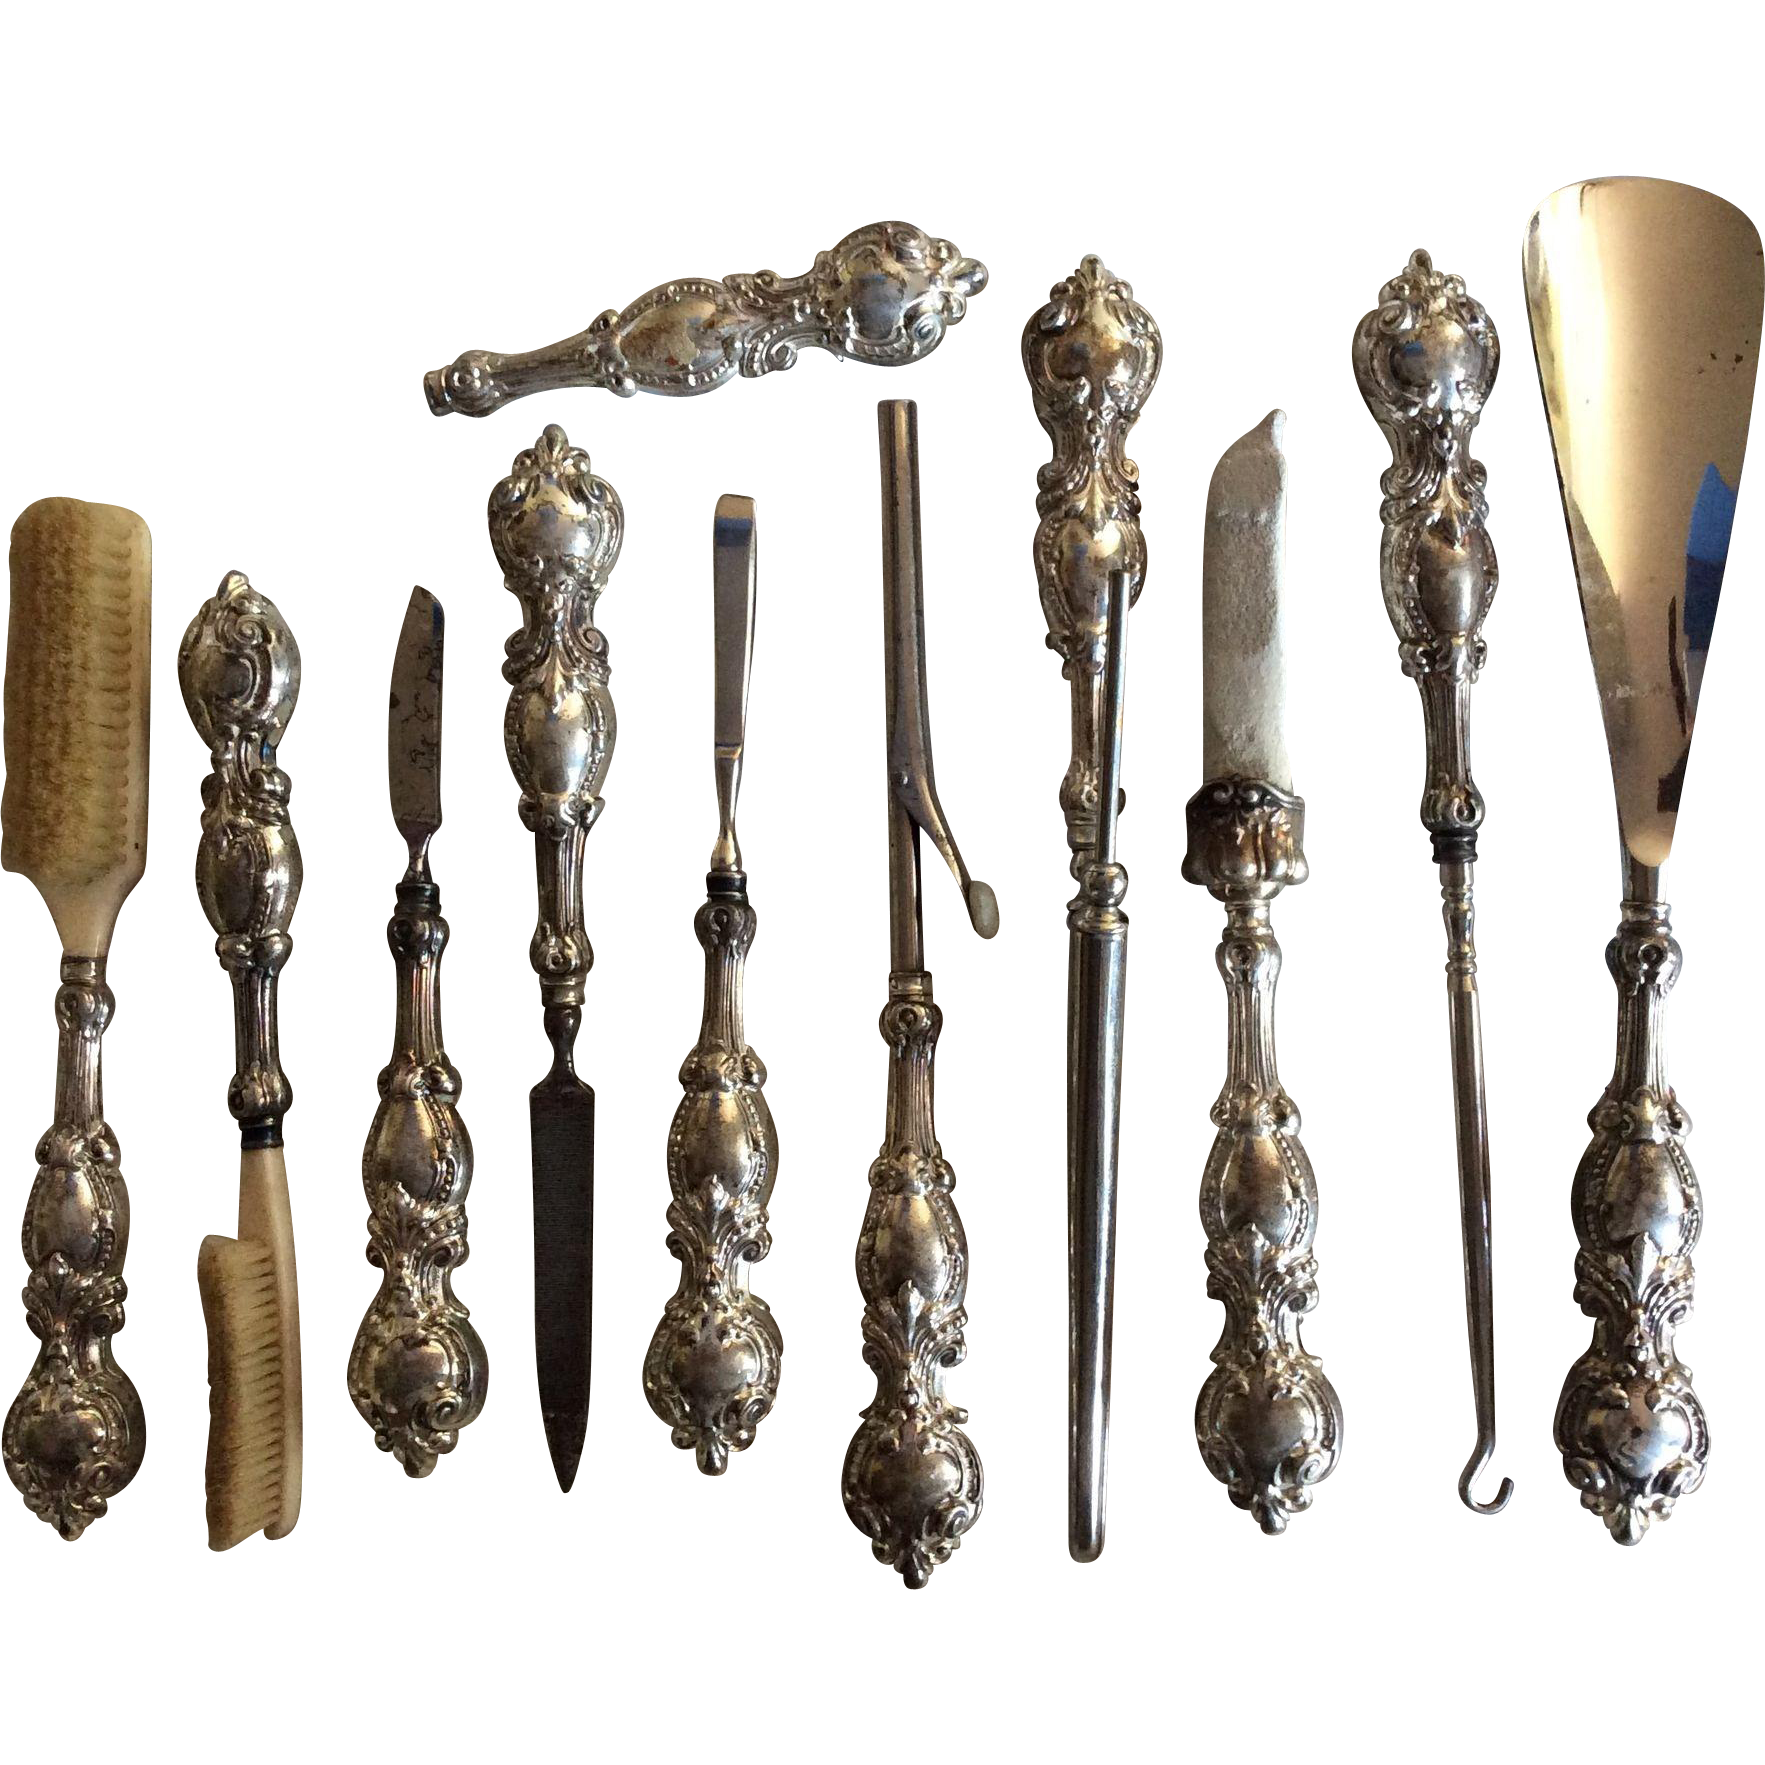 10 Ornate Sterling silver Handled Tools by Woodside for Your Boudoir